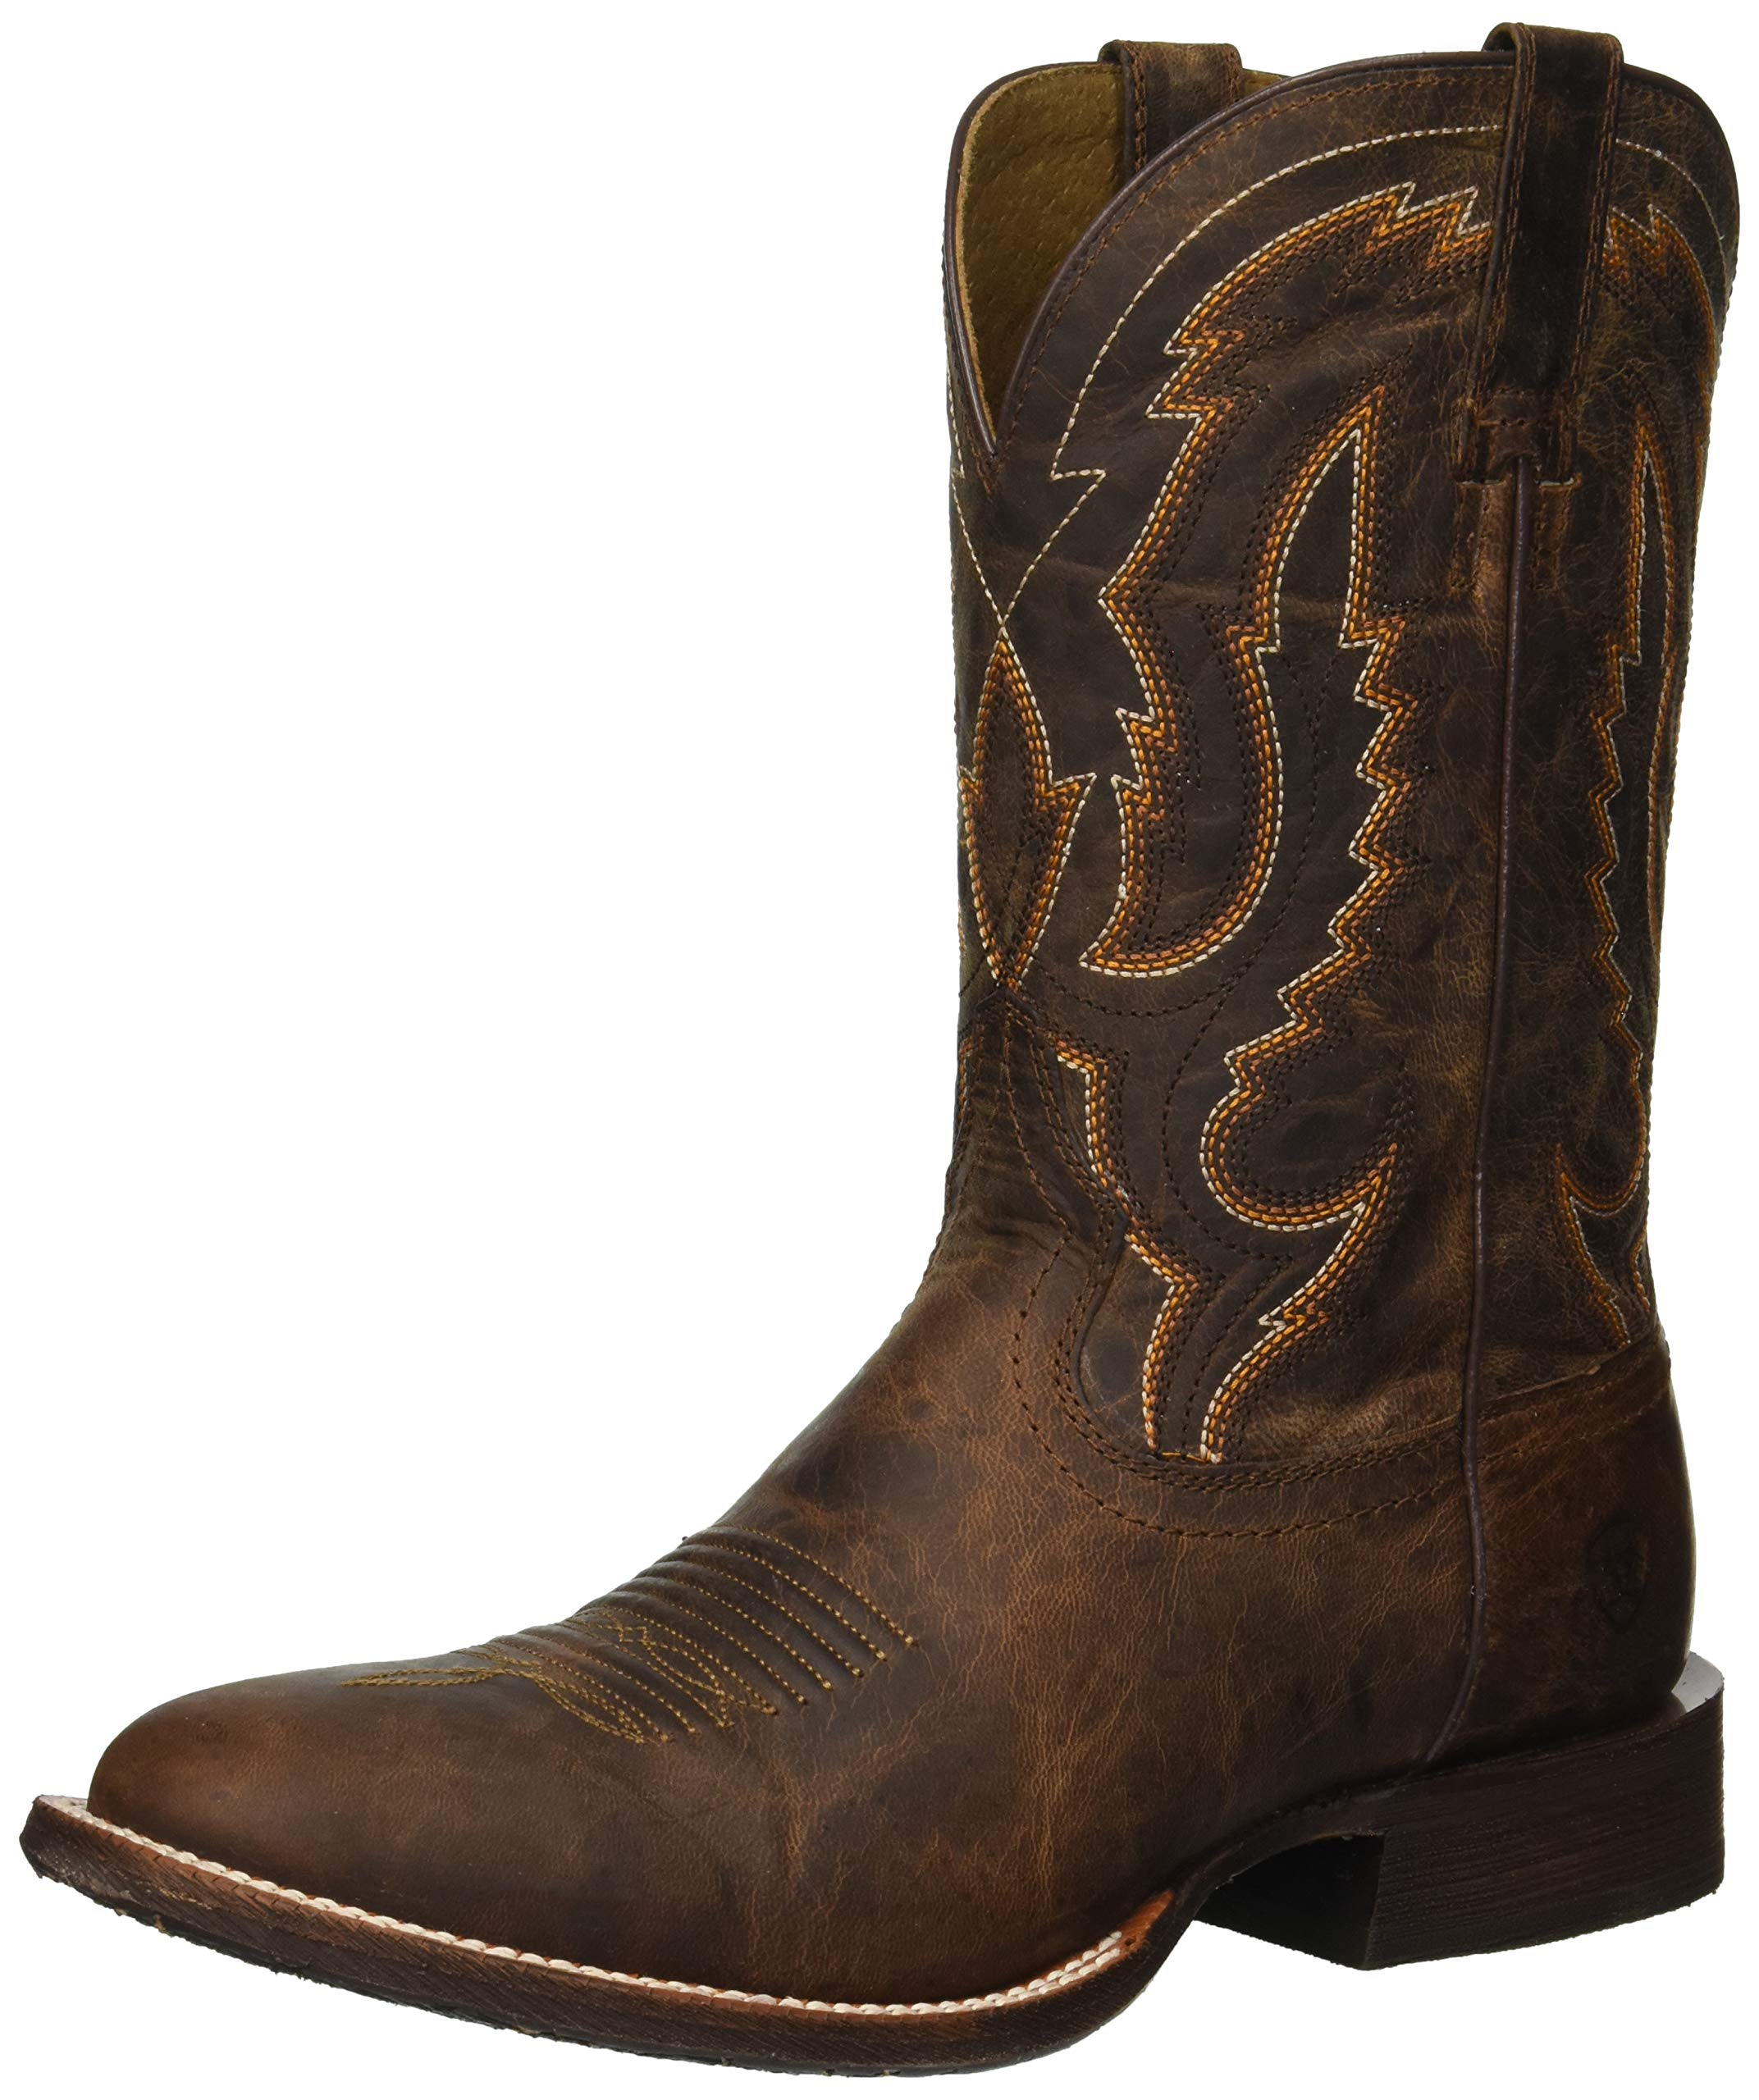 ARIAT Men's Circuit Competitor Western Boot, Weathered Tan, 13 D US